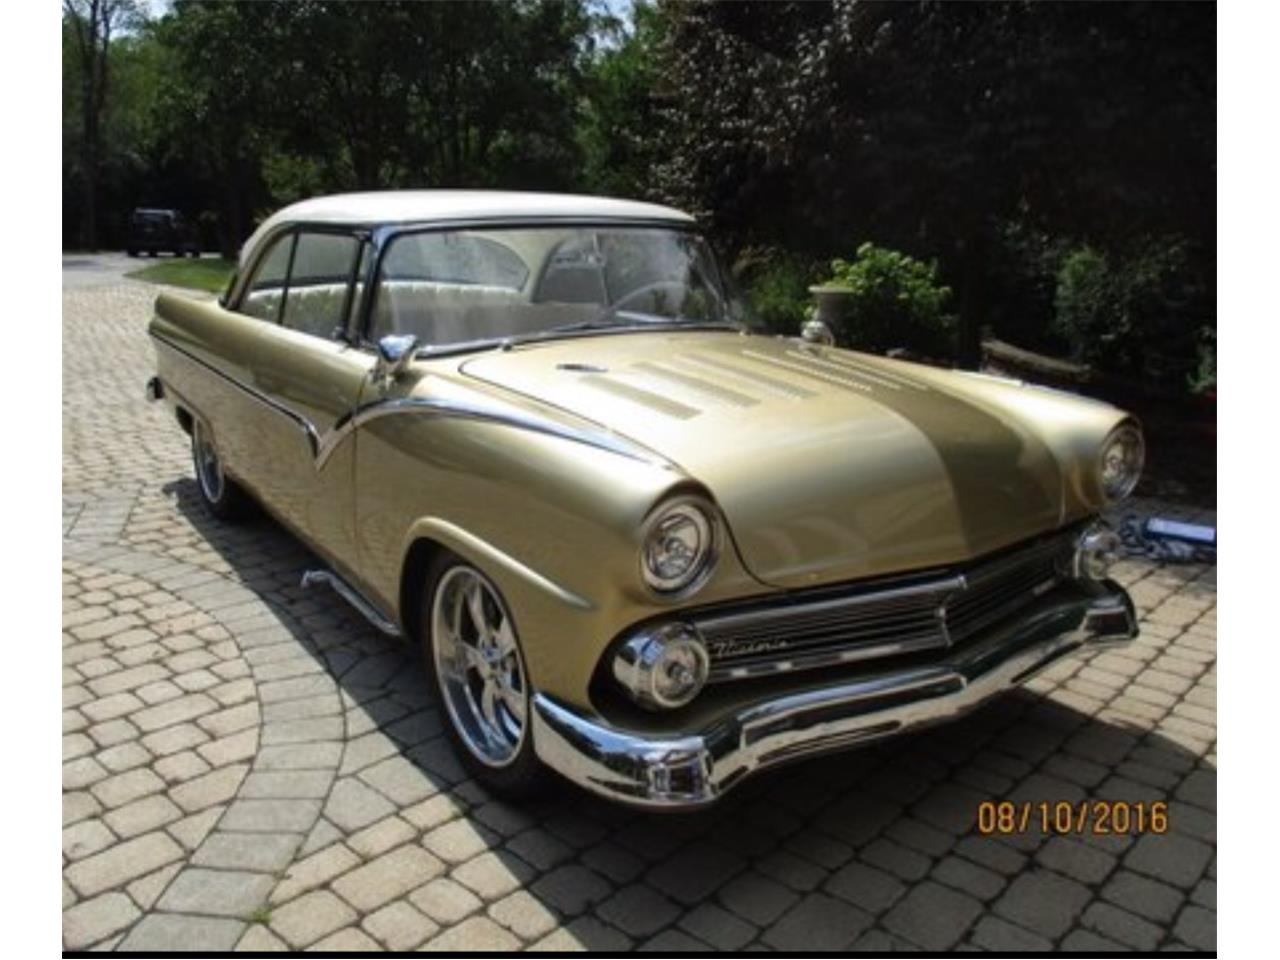 Large Picture of '55 Ford Fairlane Victoria - $75,000.00 Offered by a Private Seller - JKID